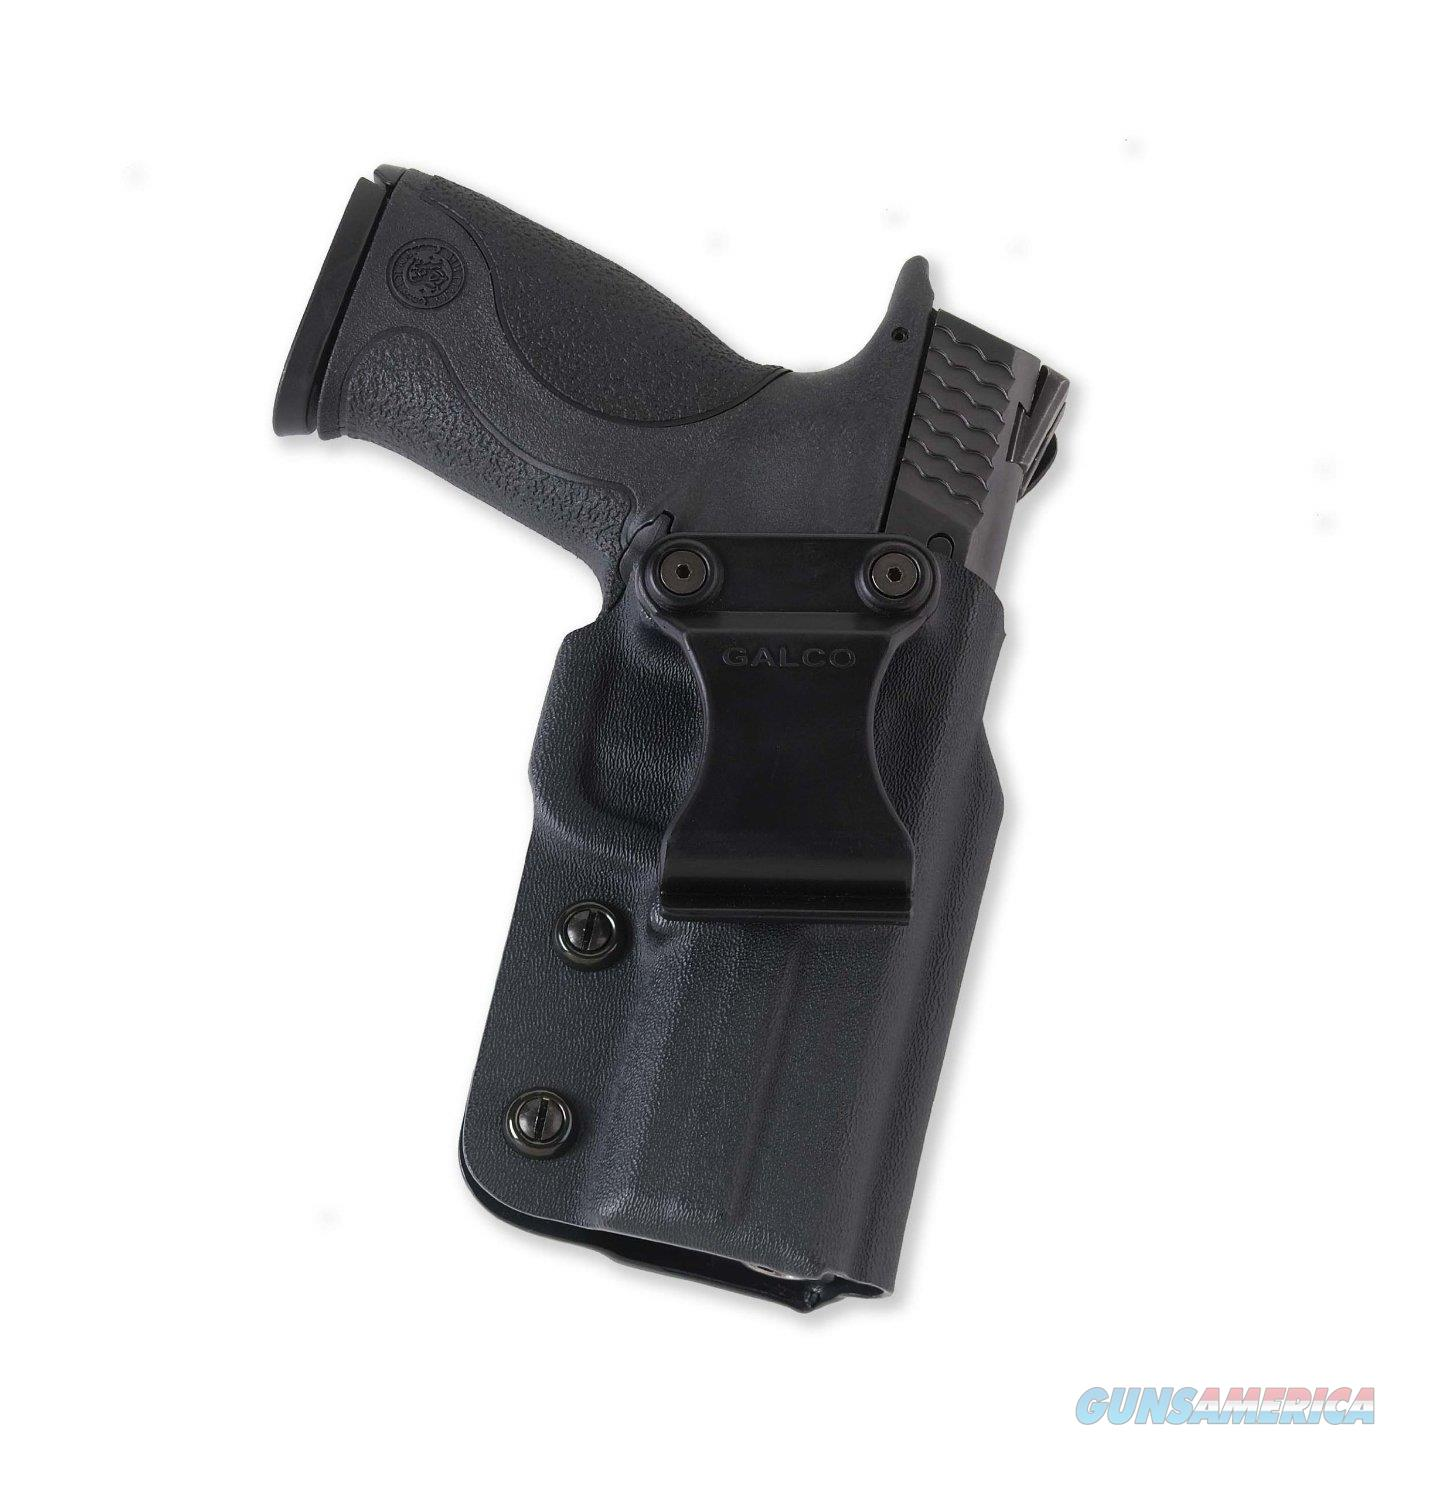 Galco Triton IWB Holster for Glock 19/23/32 TR226  Non-Guns > Holsters and Gunleather > Concealed Carry